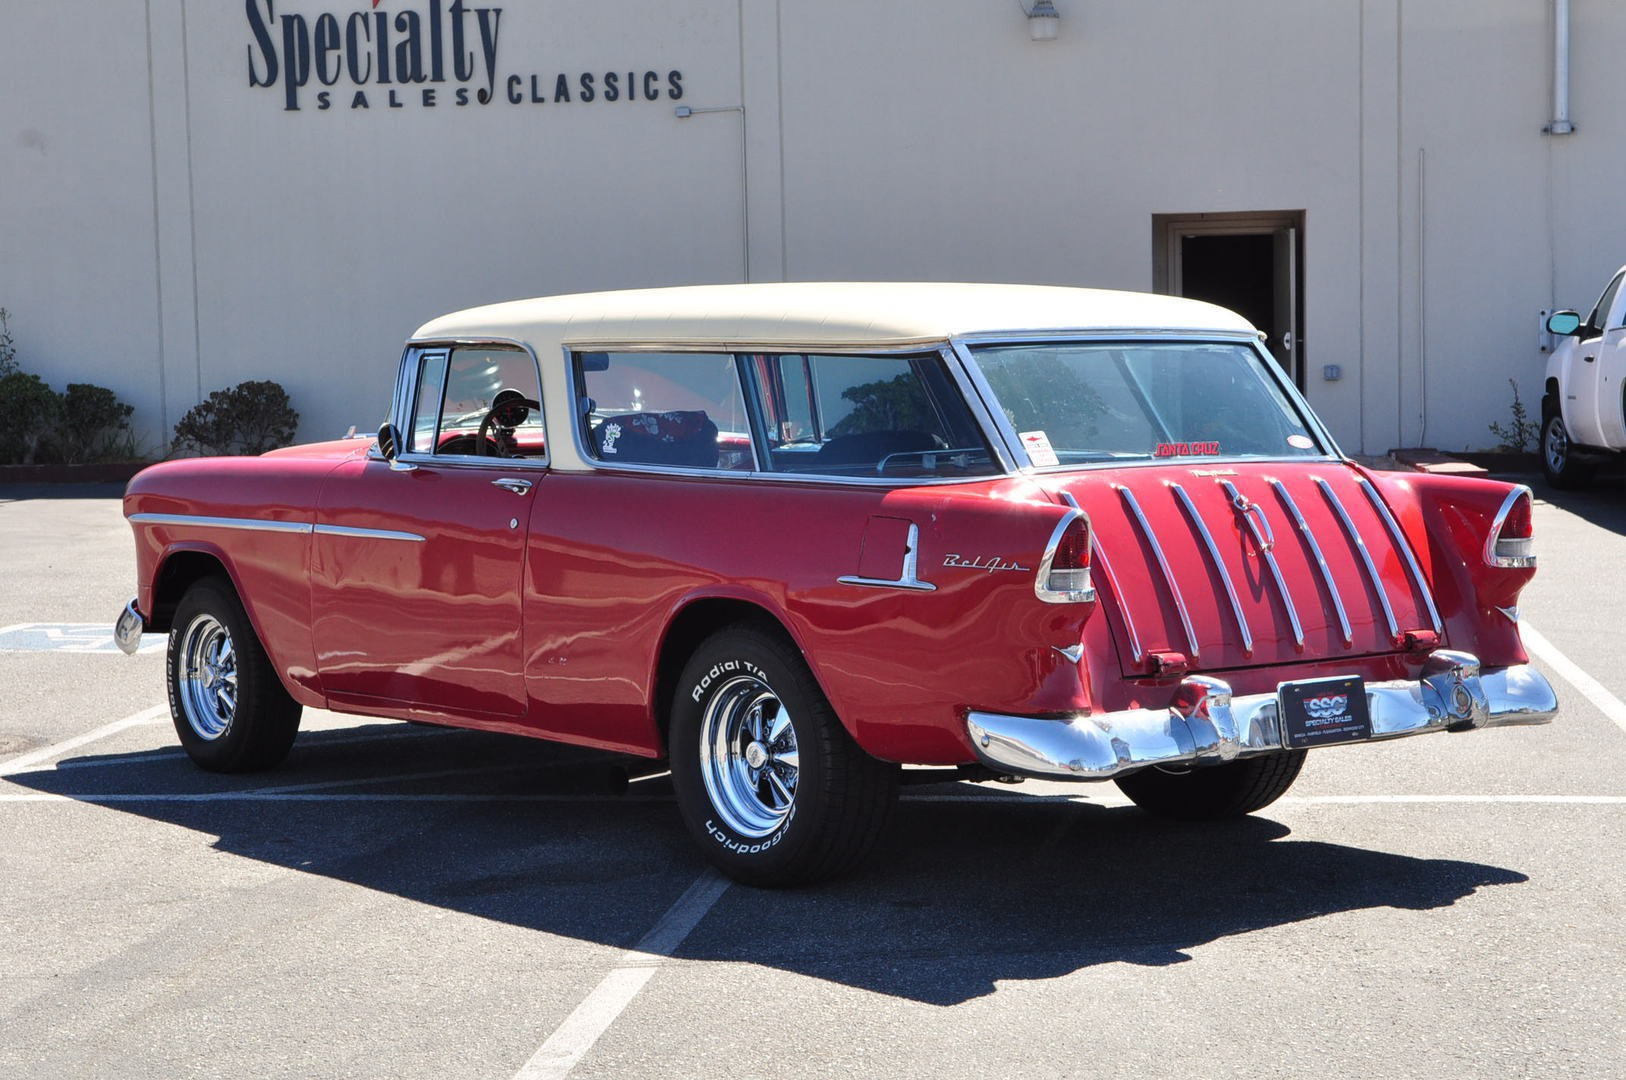 Chevrolet Vehicles Specialty Sales Classics 1957 Chevy Station Wagon 1955 Bel Air Nomad 2 Door For Sale